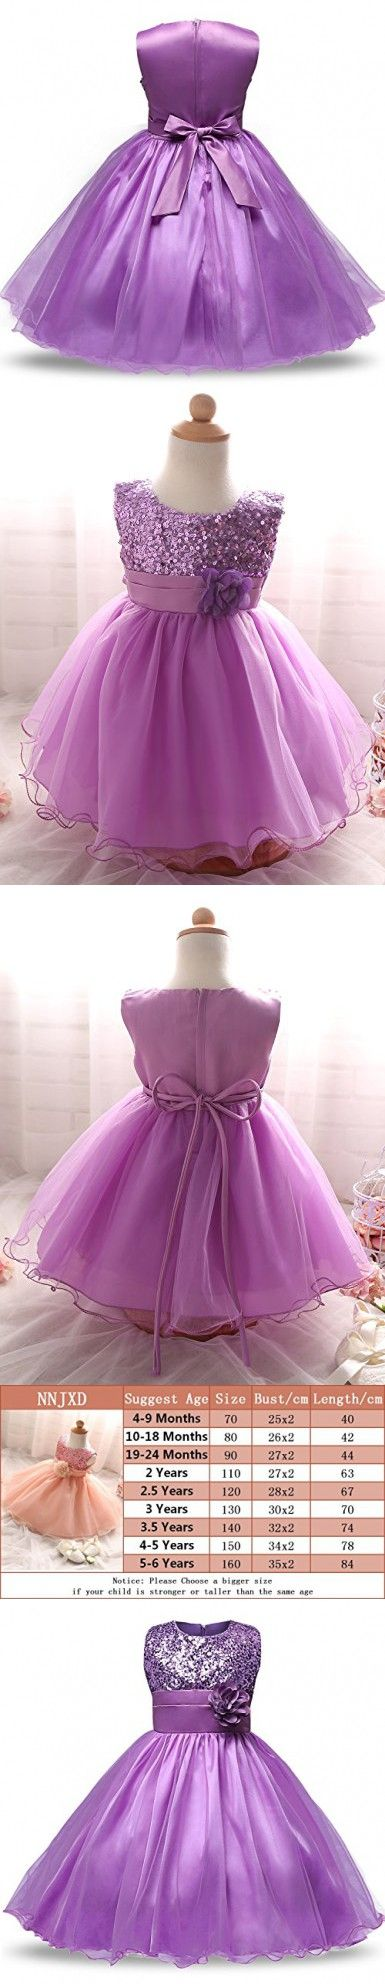 NNJXD Girl Flower Sequin Princess Tutu Tulle Baby Party Dress Size ...